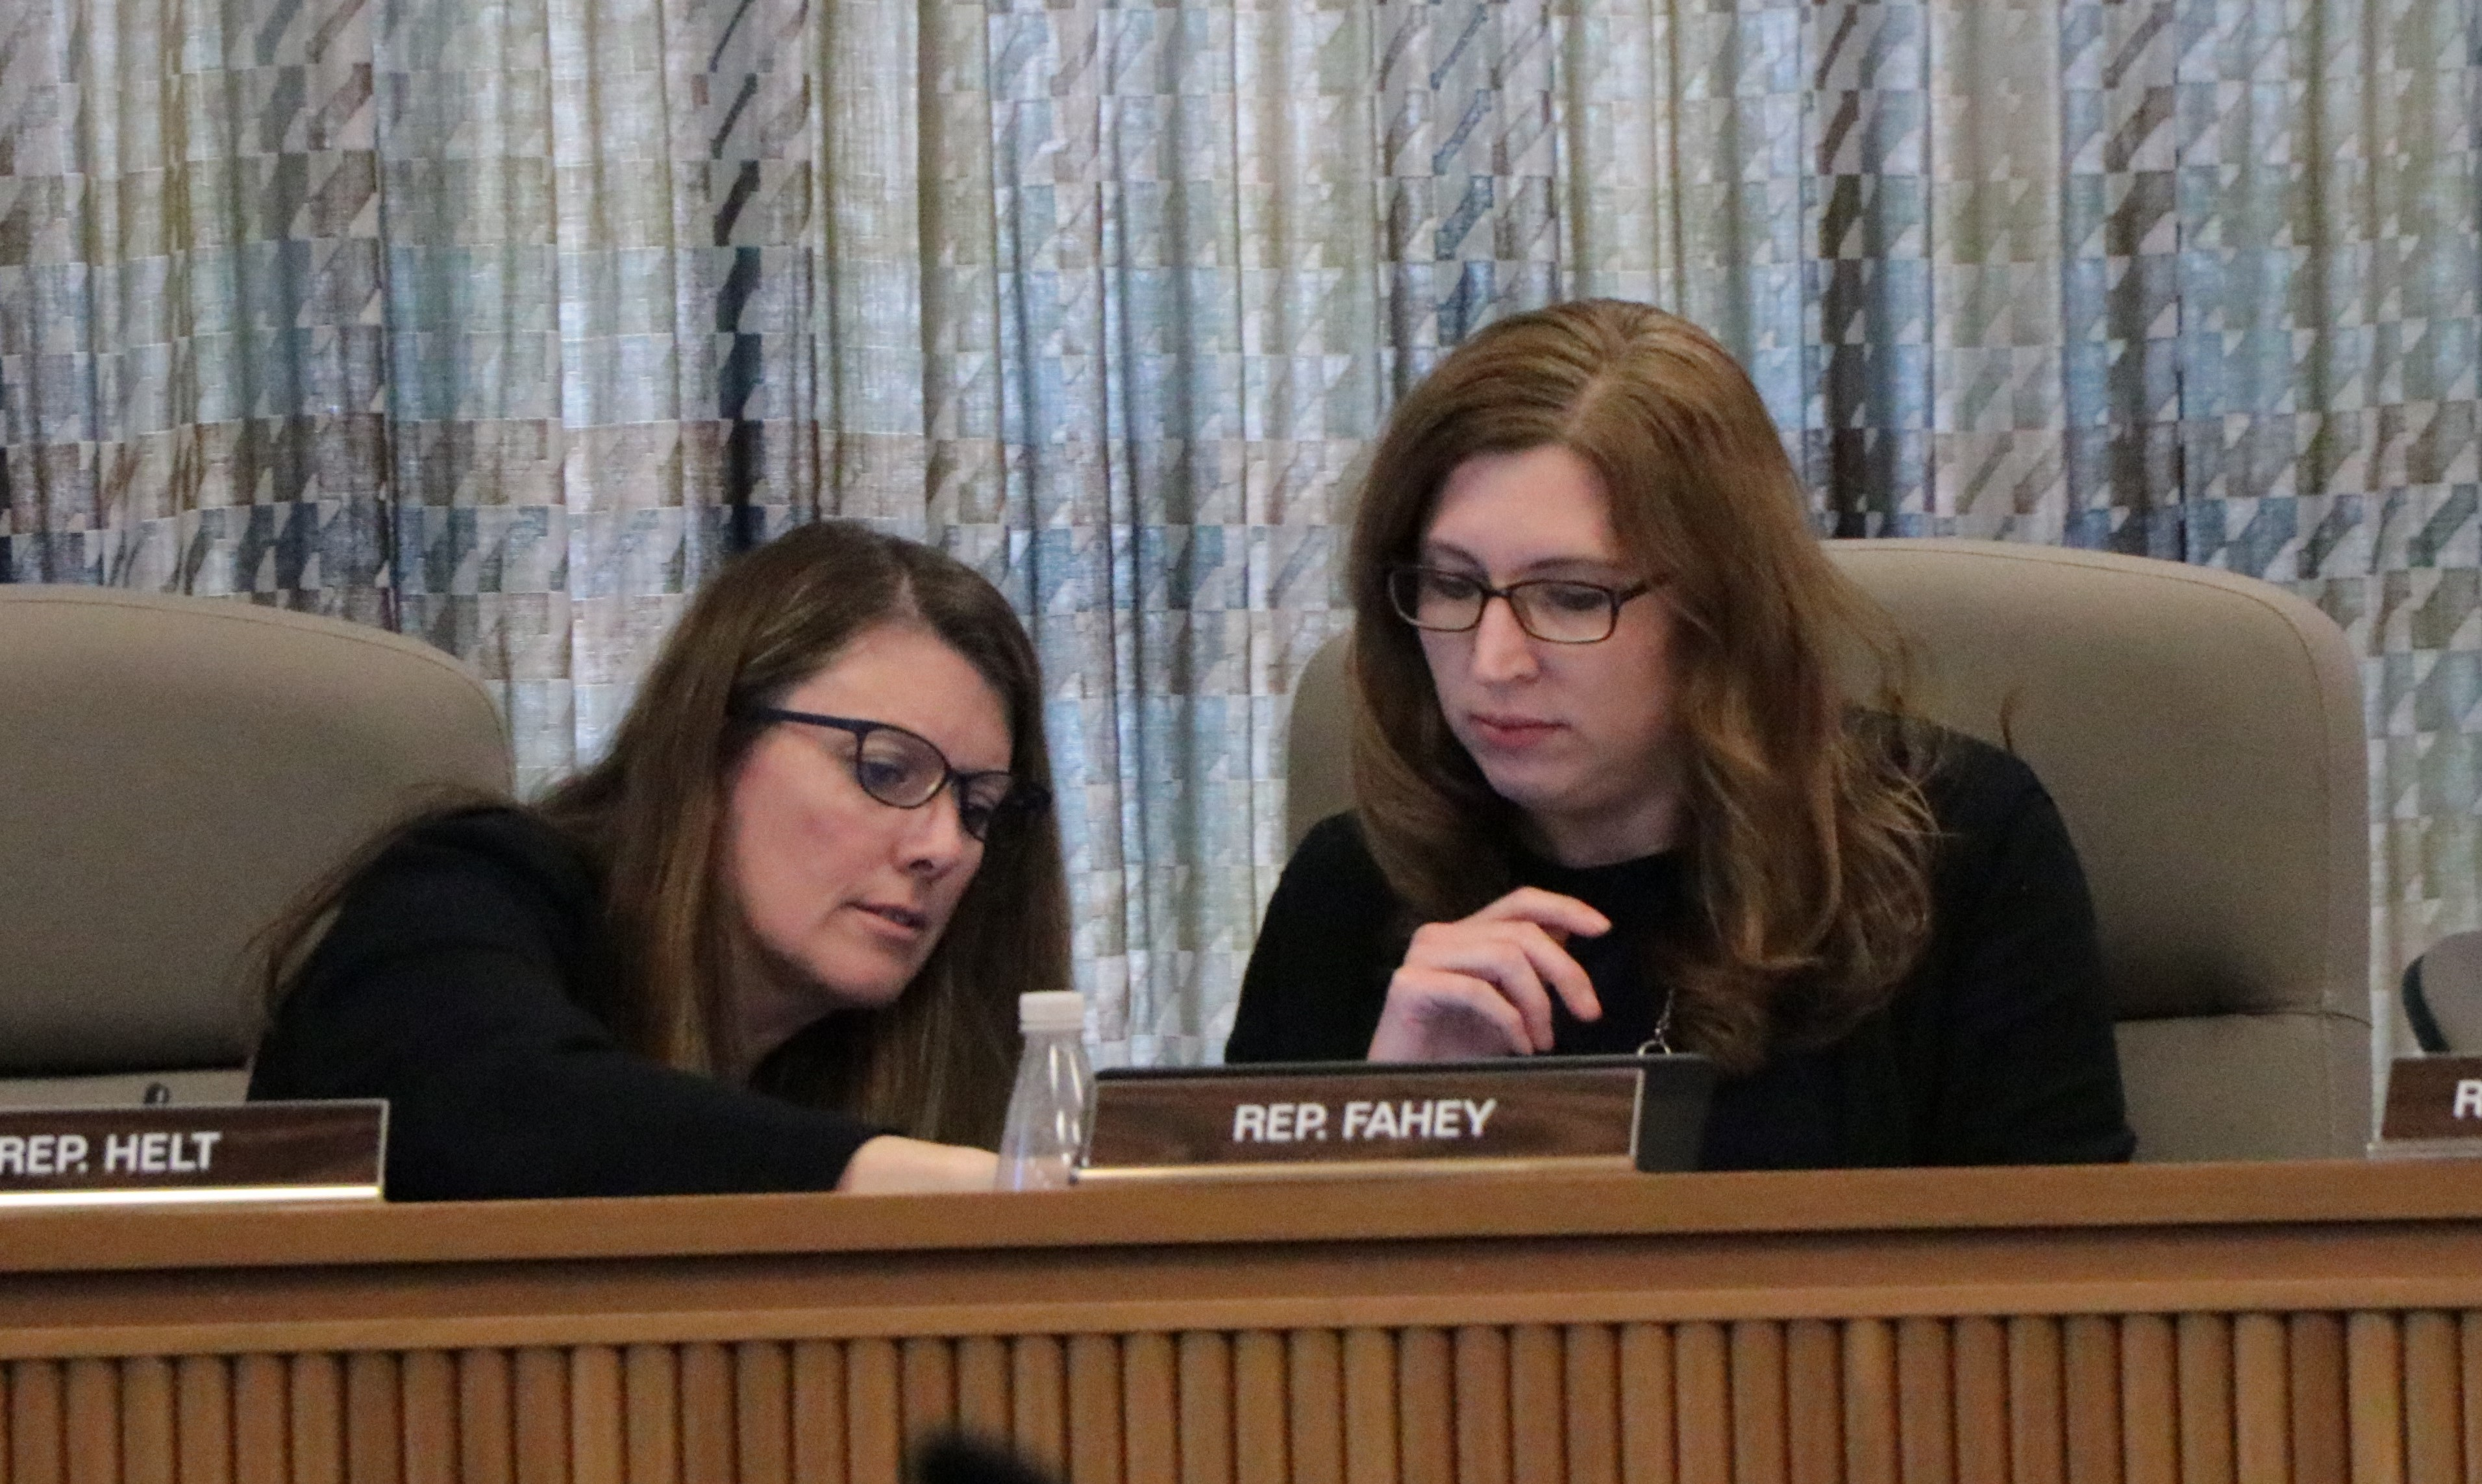 Rep. Cheri Helt, R-Bend, confers with Rep. Julie Fahey, D-Eugene, during Thursday night's Joint Committee on Student Success hearing. Helt drew on her school board experience to discuss the district-level repercussions of the committee's funding decisions. (Photo by Jake Arnold, OSBA)